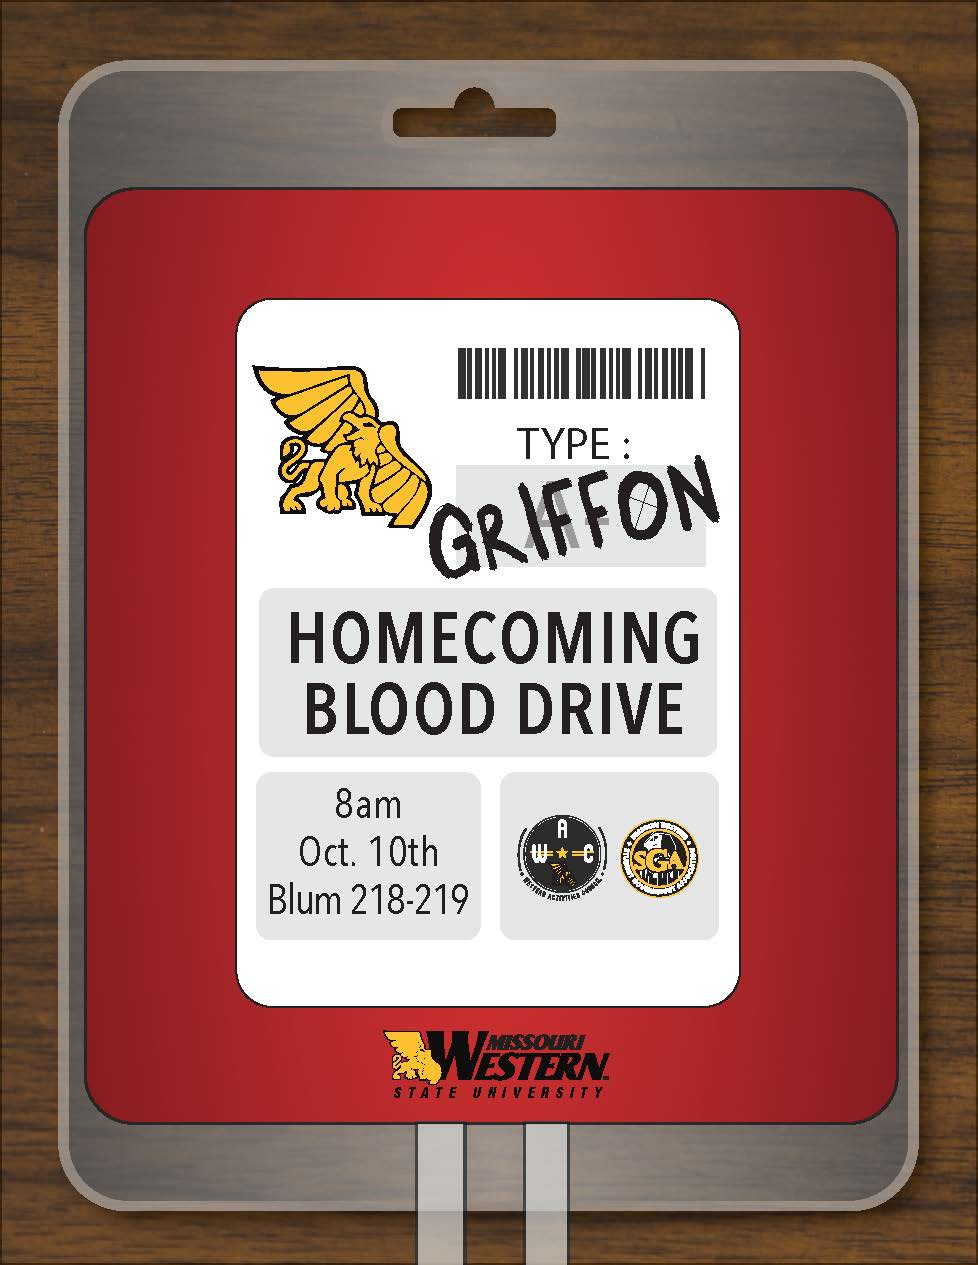 Homecoming blood drive